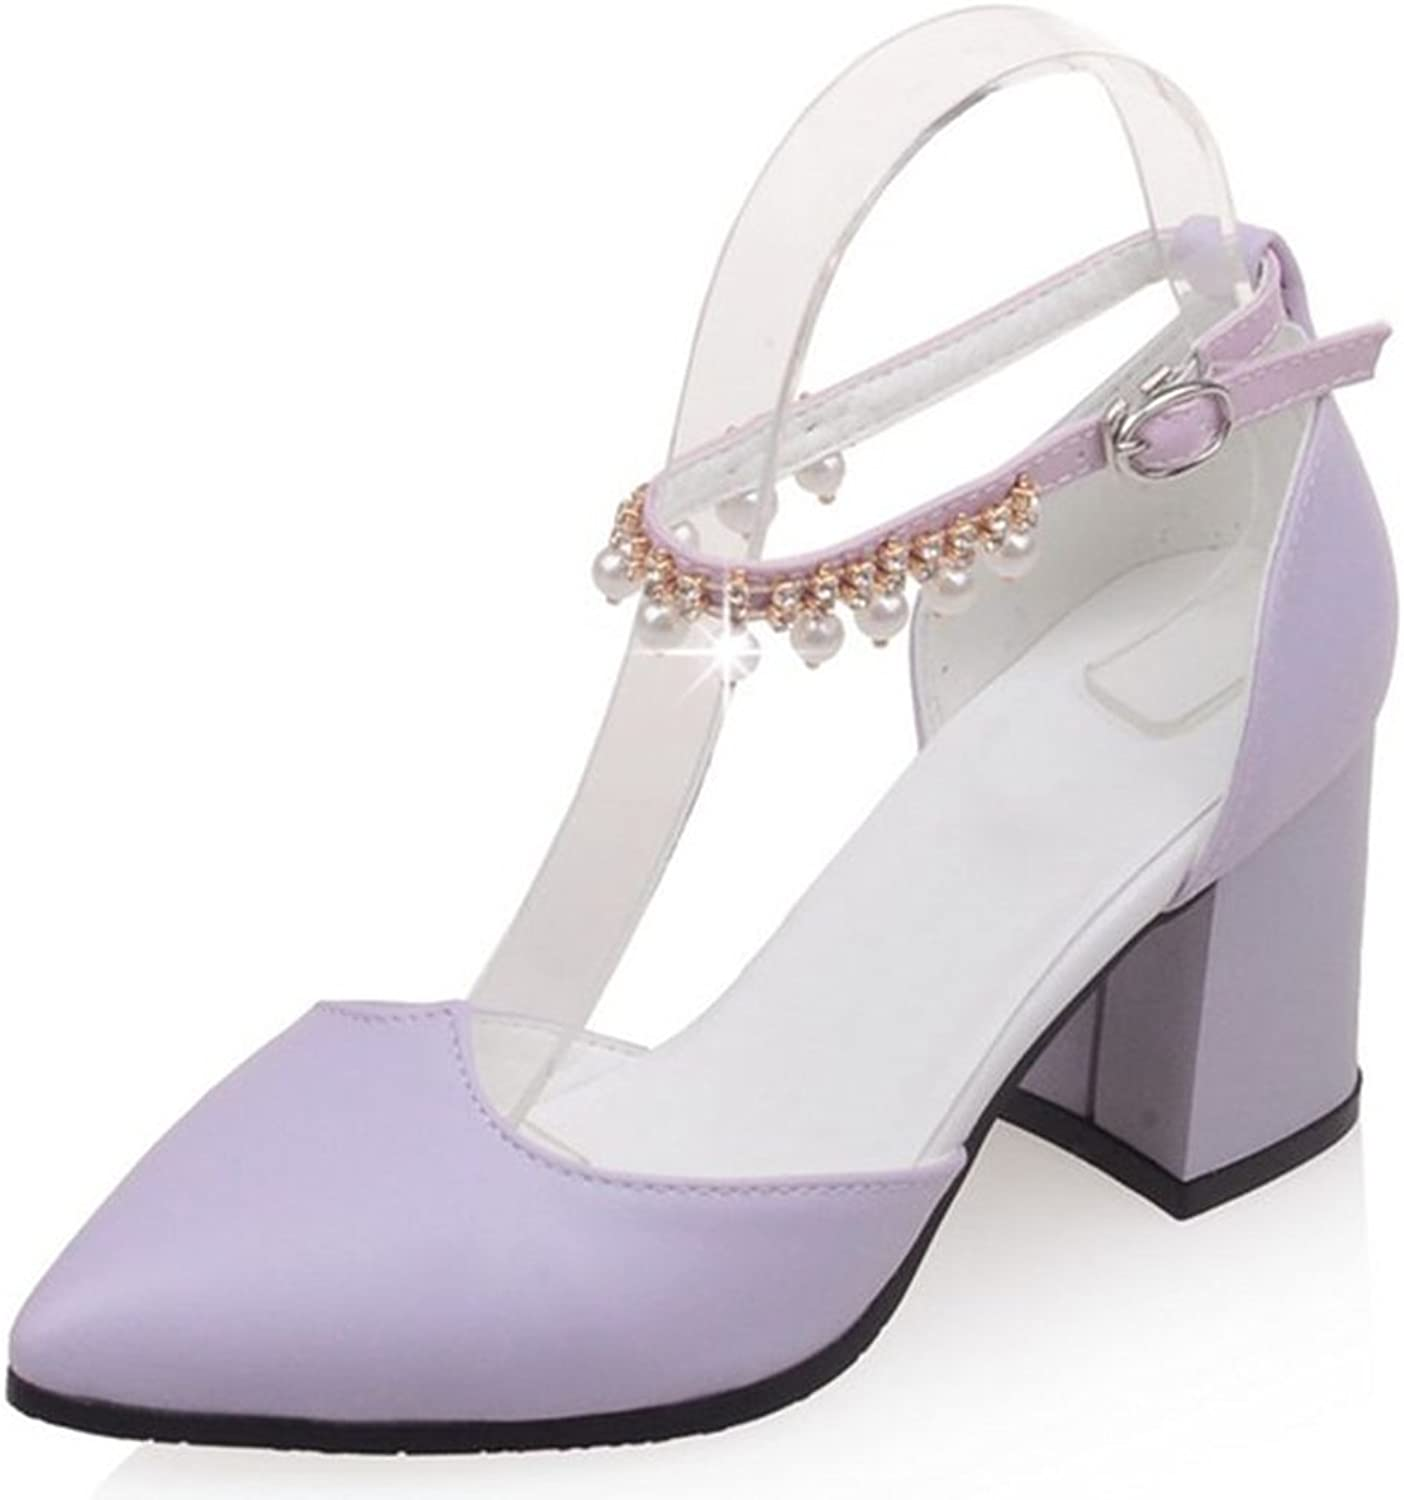 Kaloosh Women's Beautiful Pointed Toe Buckle Strap Beading Square Mid Heels Court shoes Party Pumps